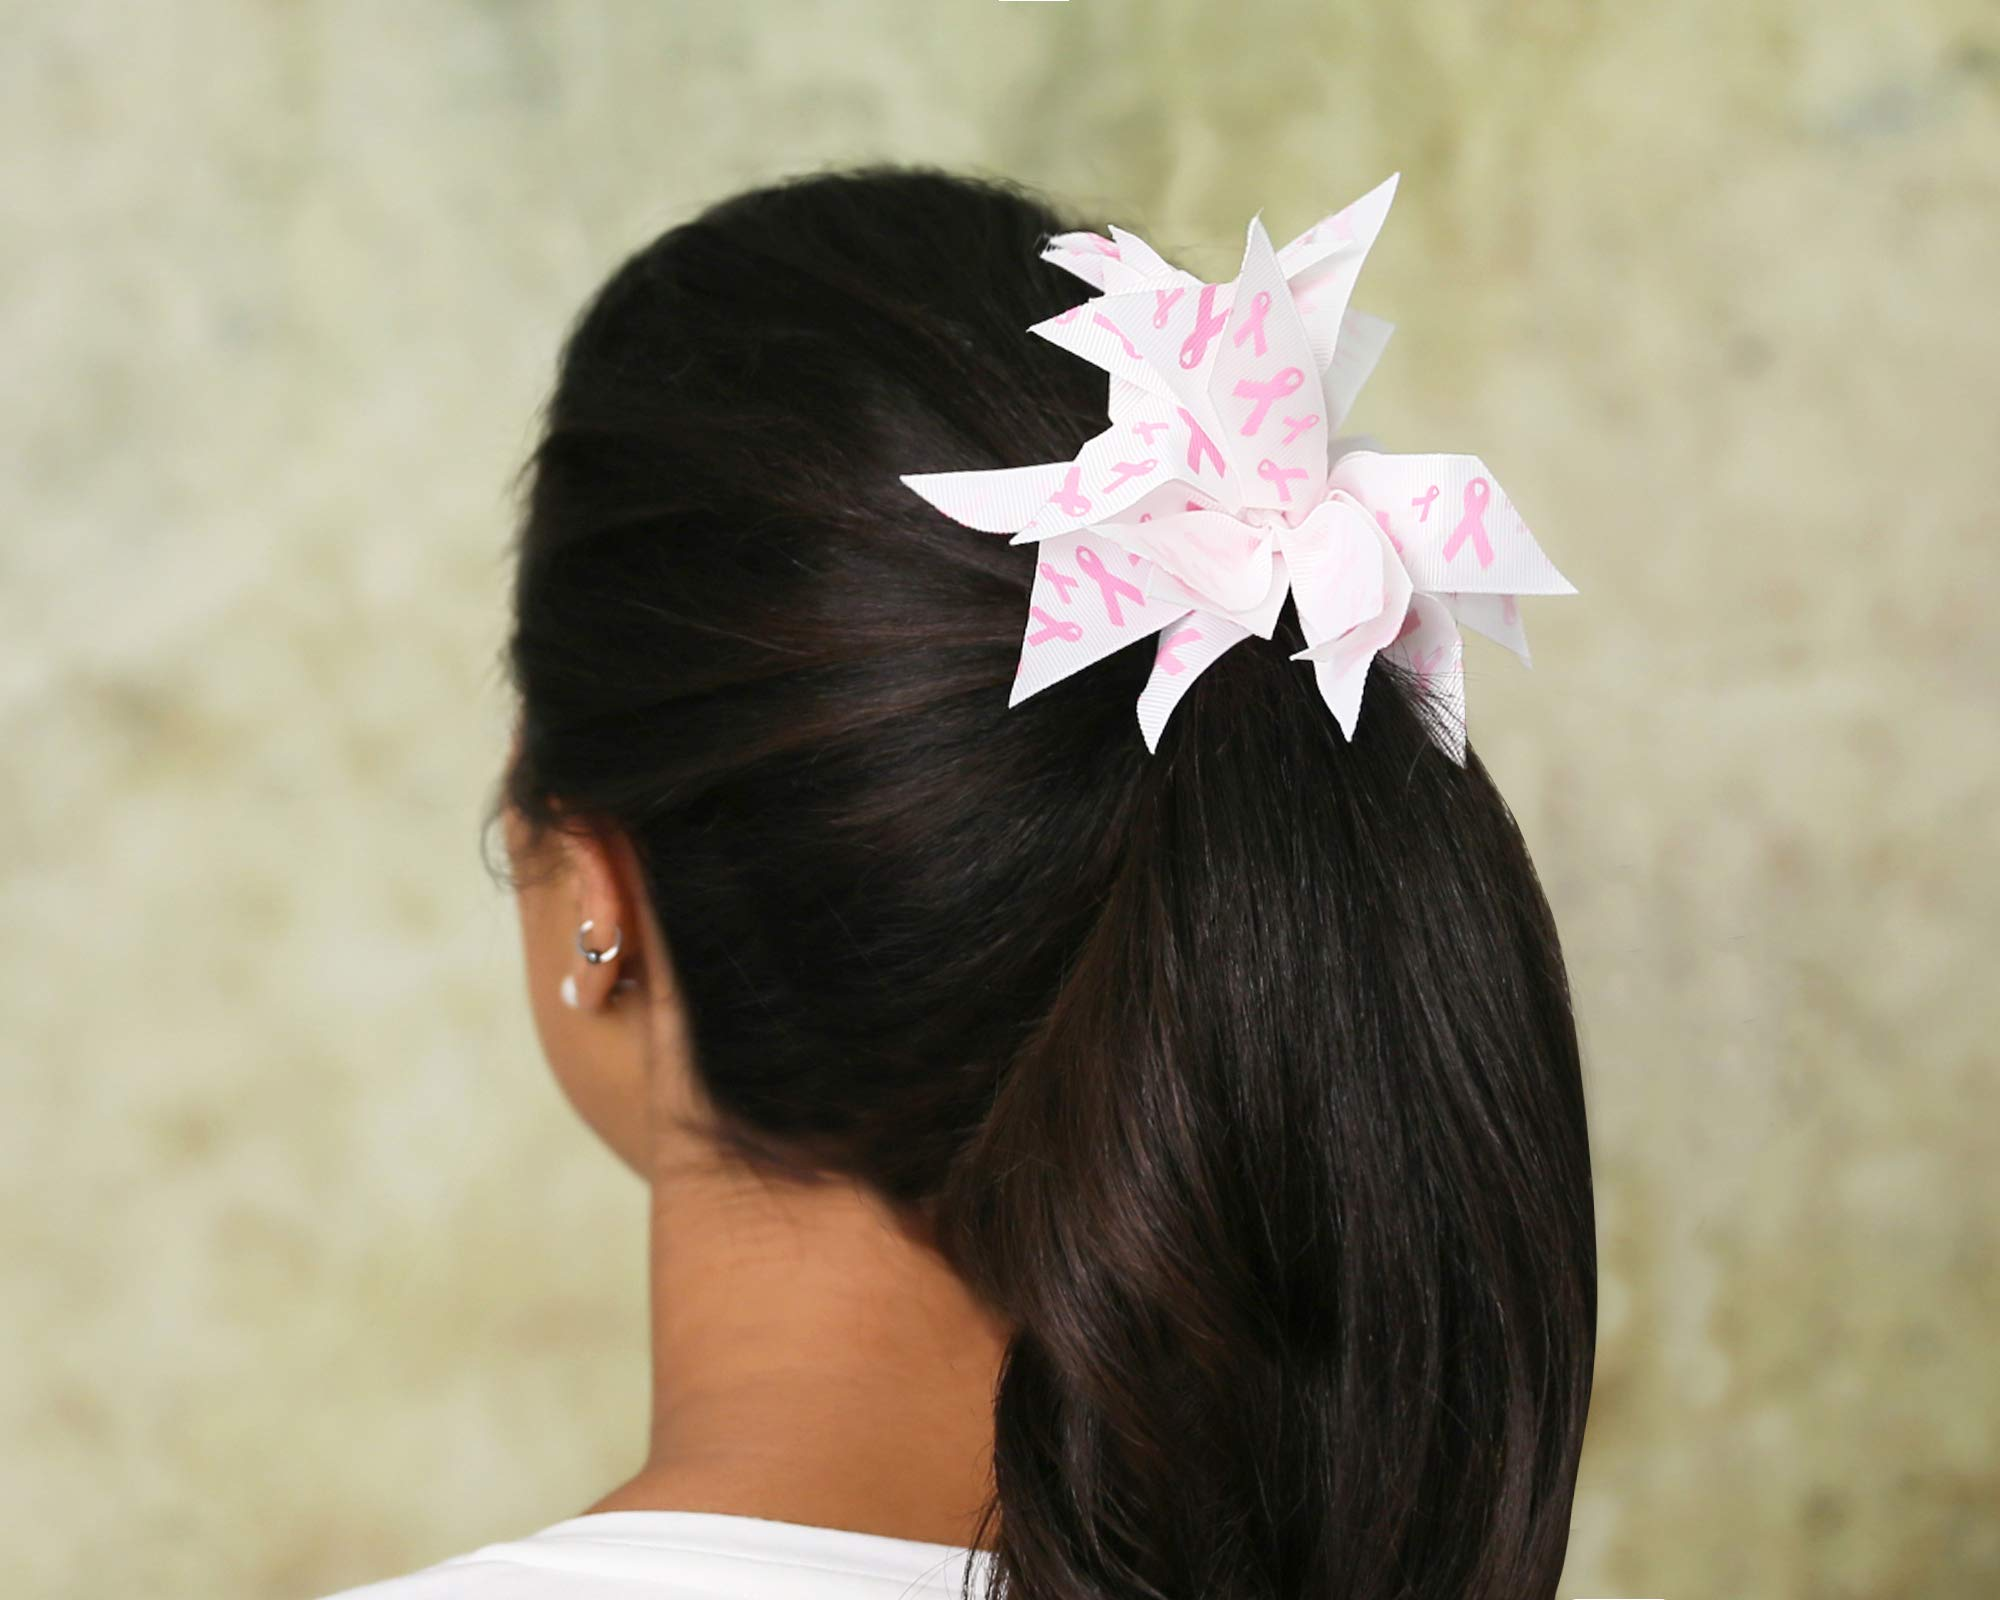 25 Breast Cancer Ribbon Awareness Pink Ribbon Hair Bows (Wholesale Pack - 25 Bows) by Fundraising For A Cause